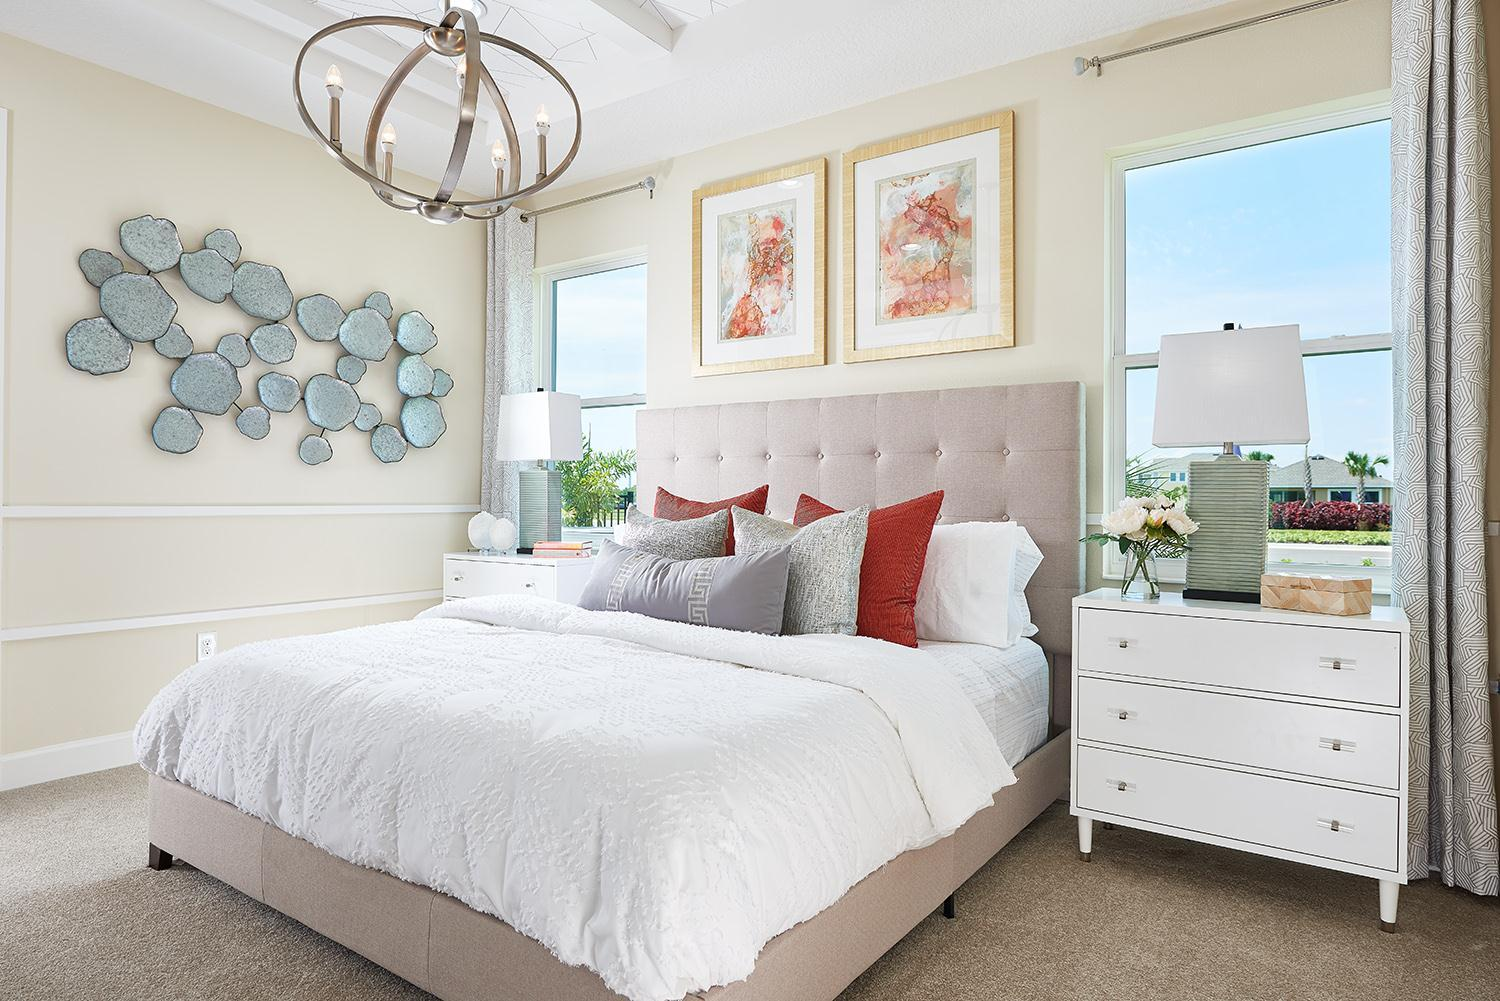 Bedroom featured in the Seville By Park Square Residential in Tampa-St. Petersburg, FL